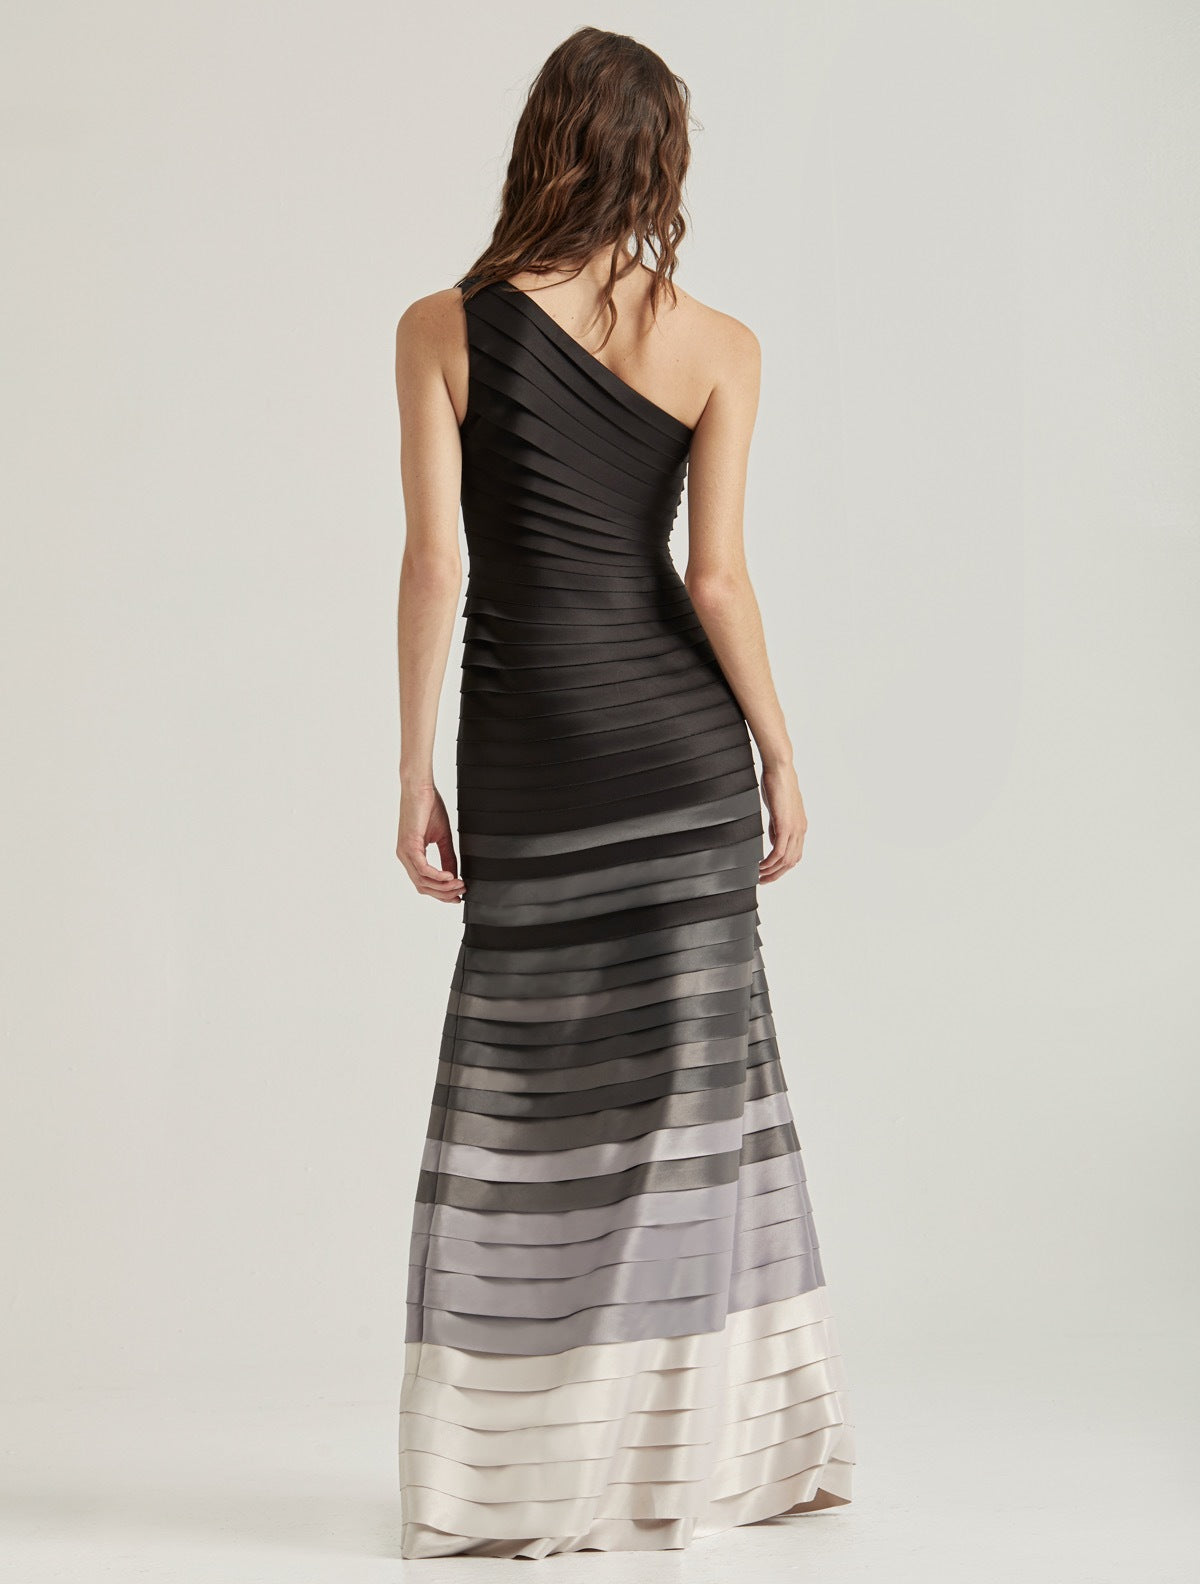 OMBRE STRIP GOWN - Halston